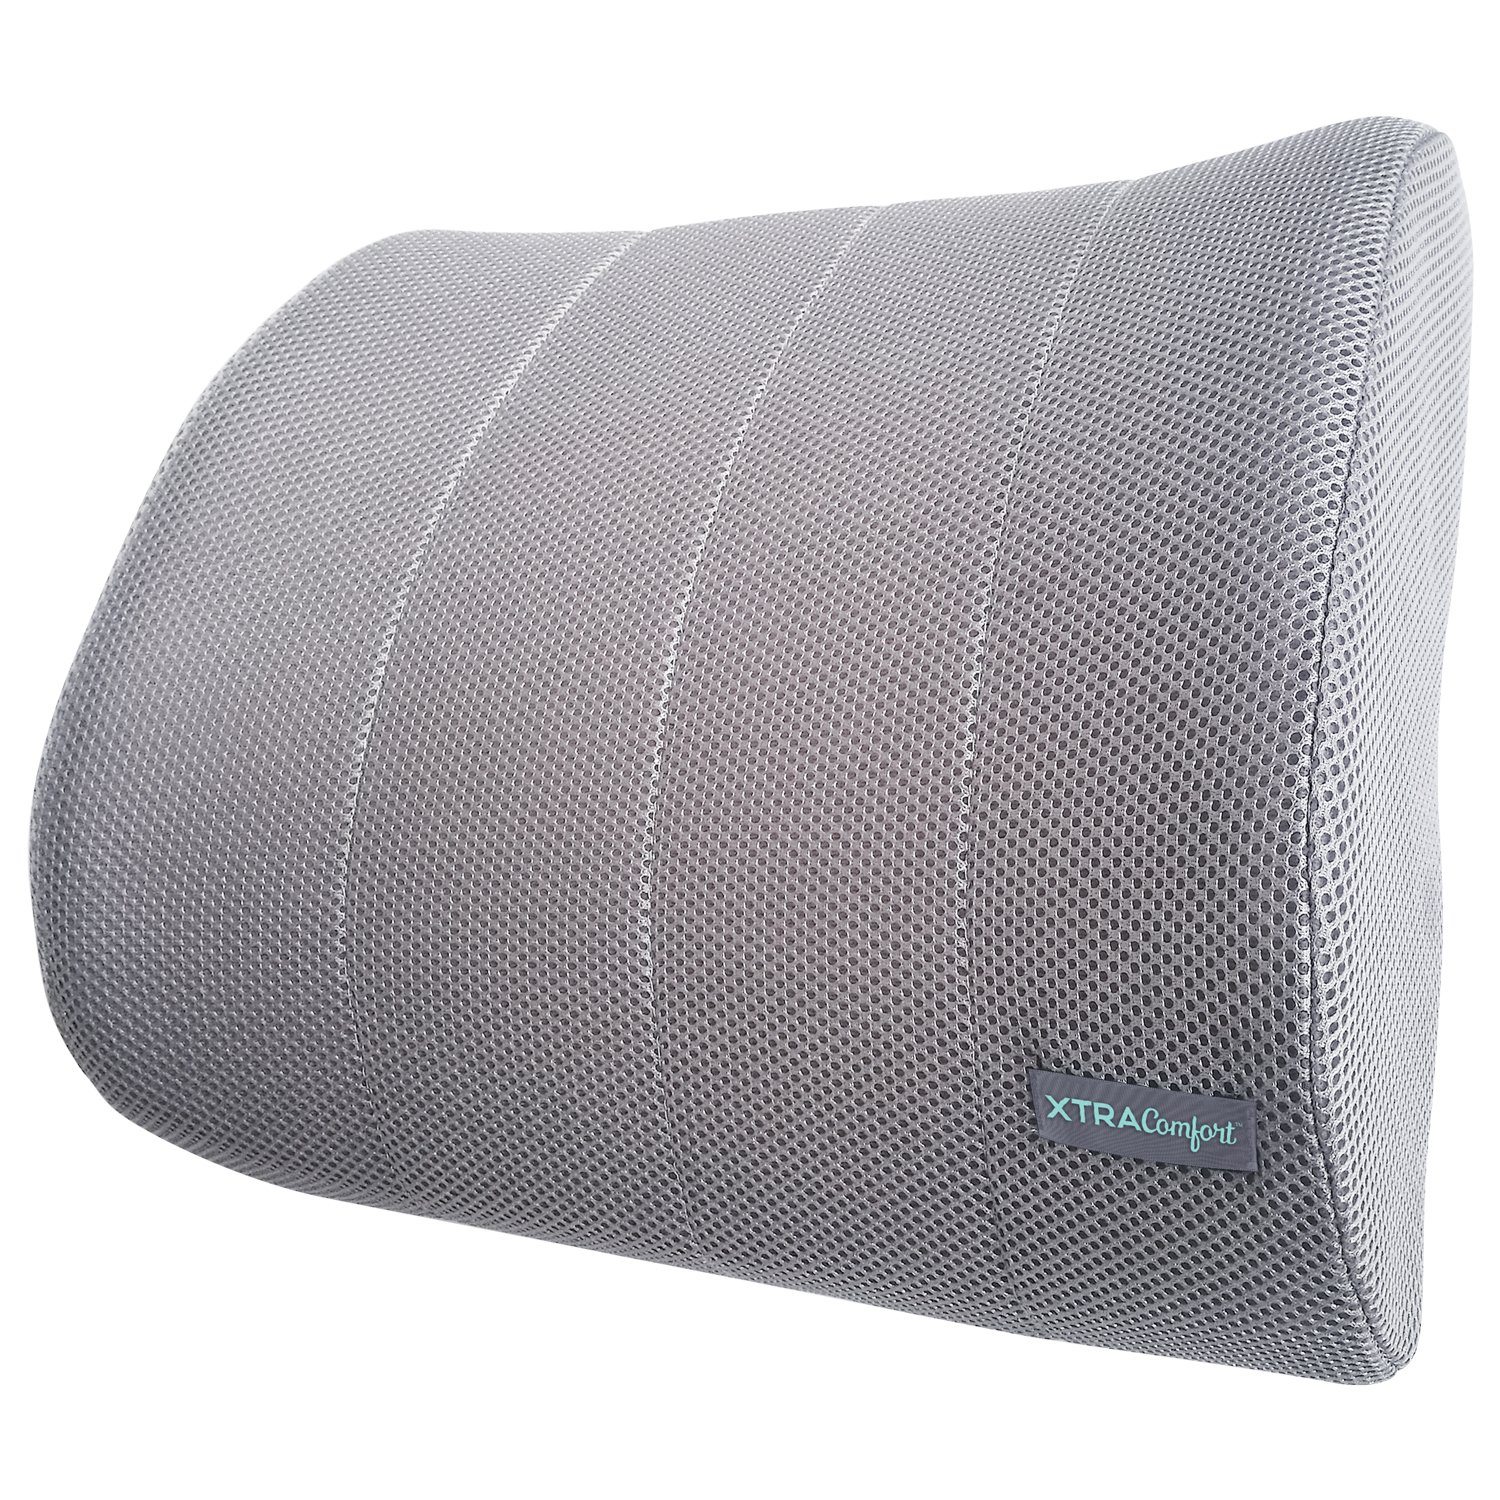 Xtra-Comfort Mesh Lumbar Support - Lower Back Seat Pillow - For Office Chairs, Car, Travel, Gaming - Orthopedic Therapeutic Backrest Cushion, Plus Strap - Firm Foam Roll Ergonomic Low Rest Pad